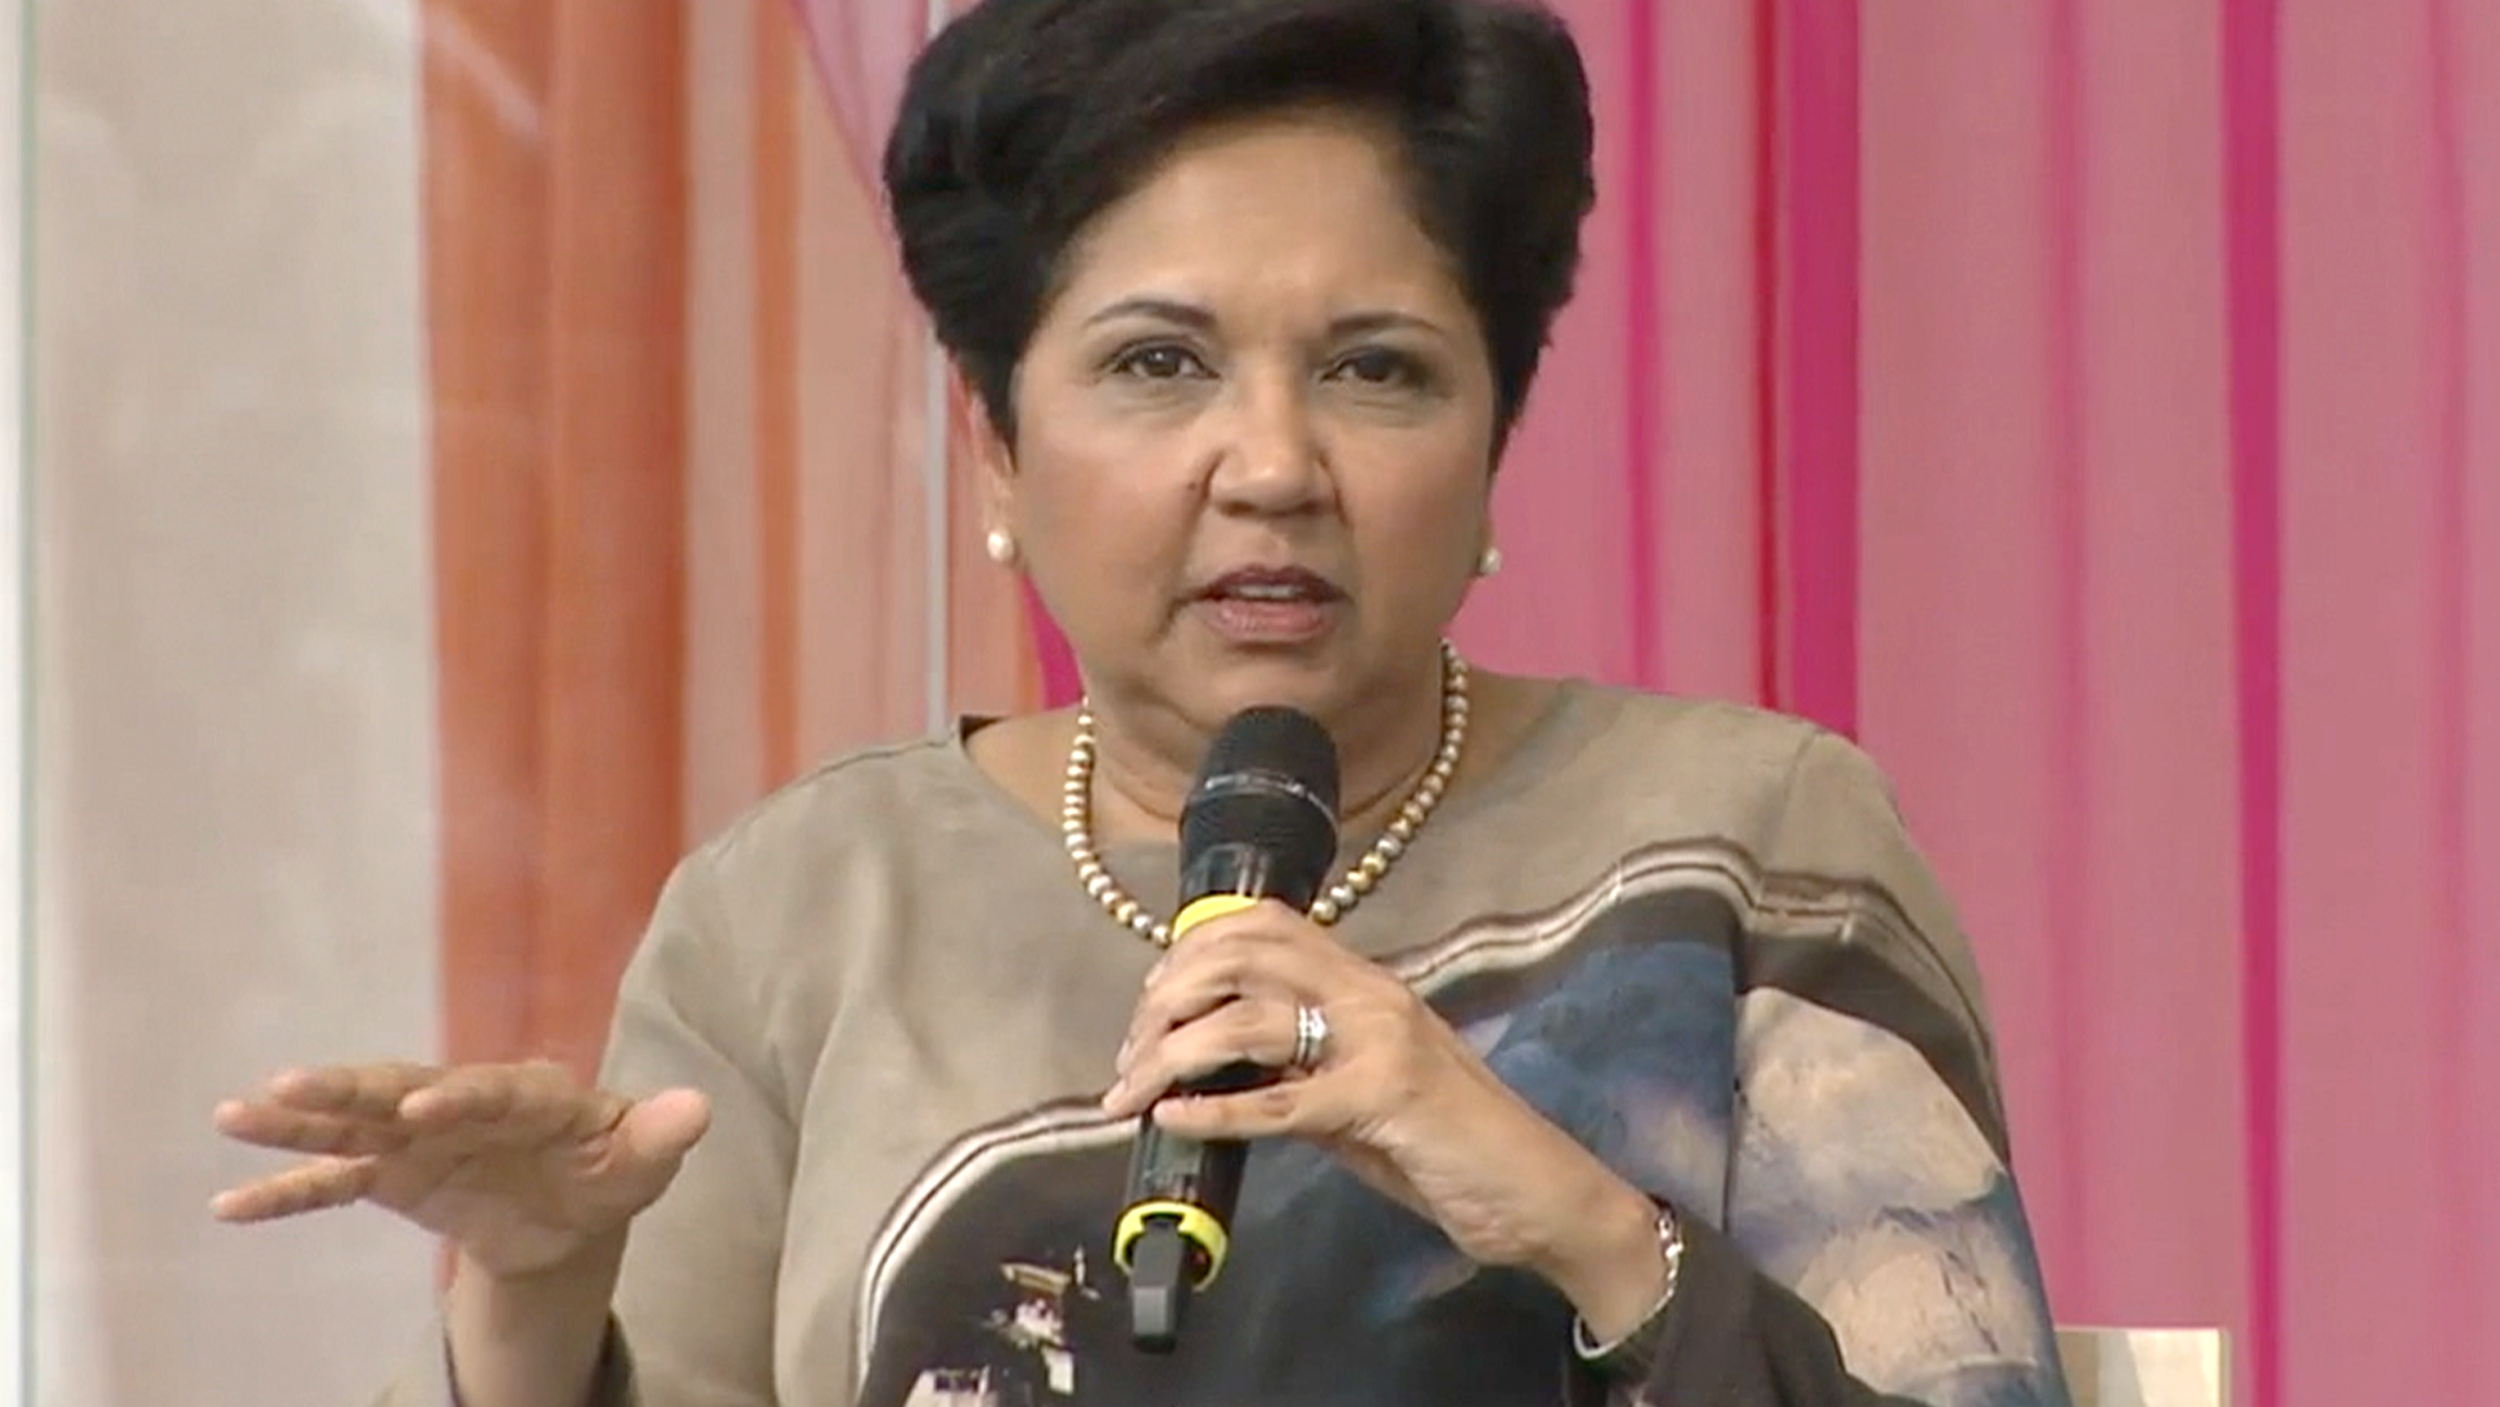 Ceo Indra Nooyi Thinks Working Women Can T Have It All Today Debates Today Com